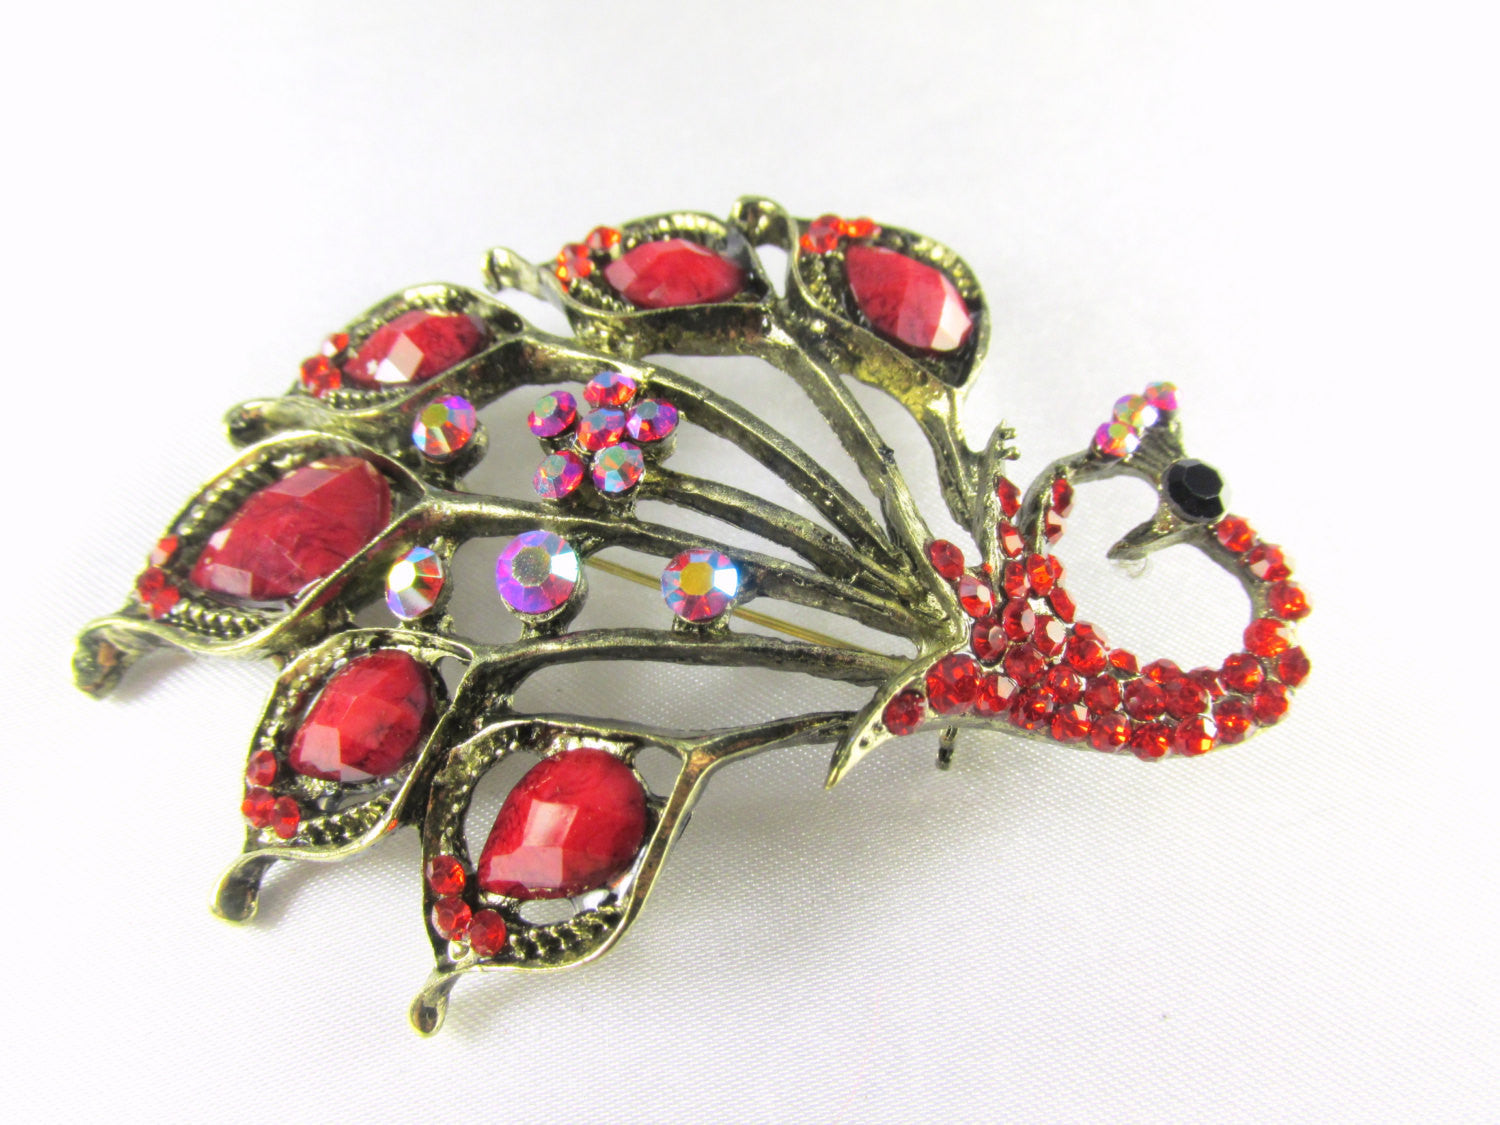 Marsala Red Peacock Brooch in Antique Gold - Odyssey Cache - 2